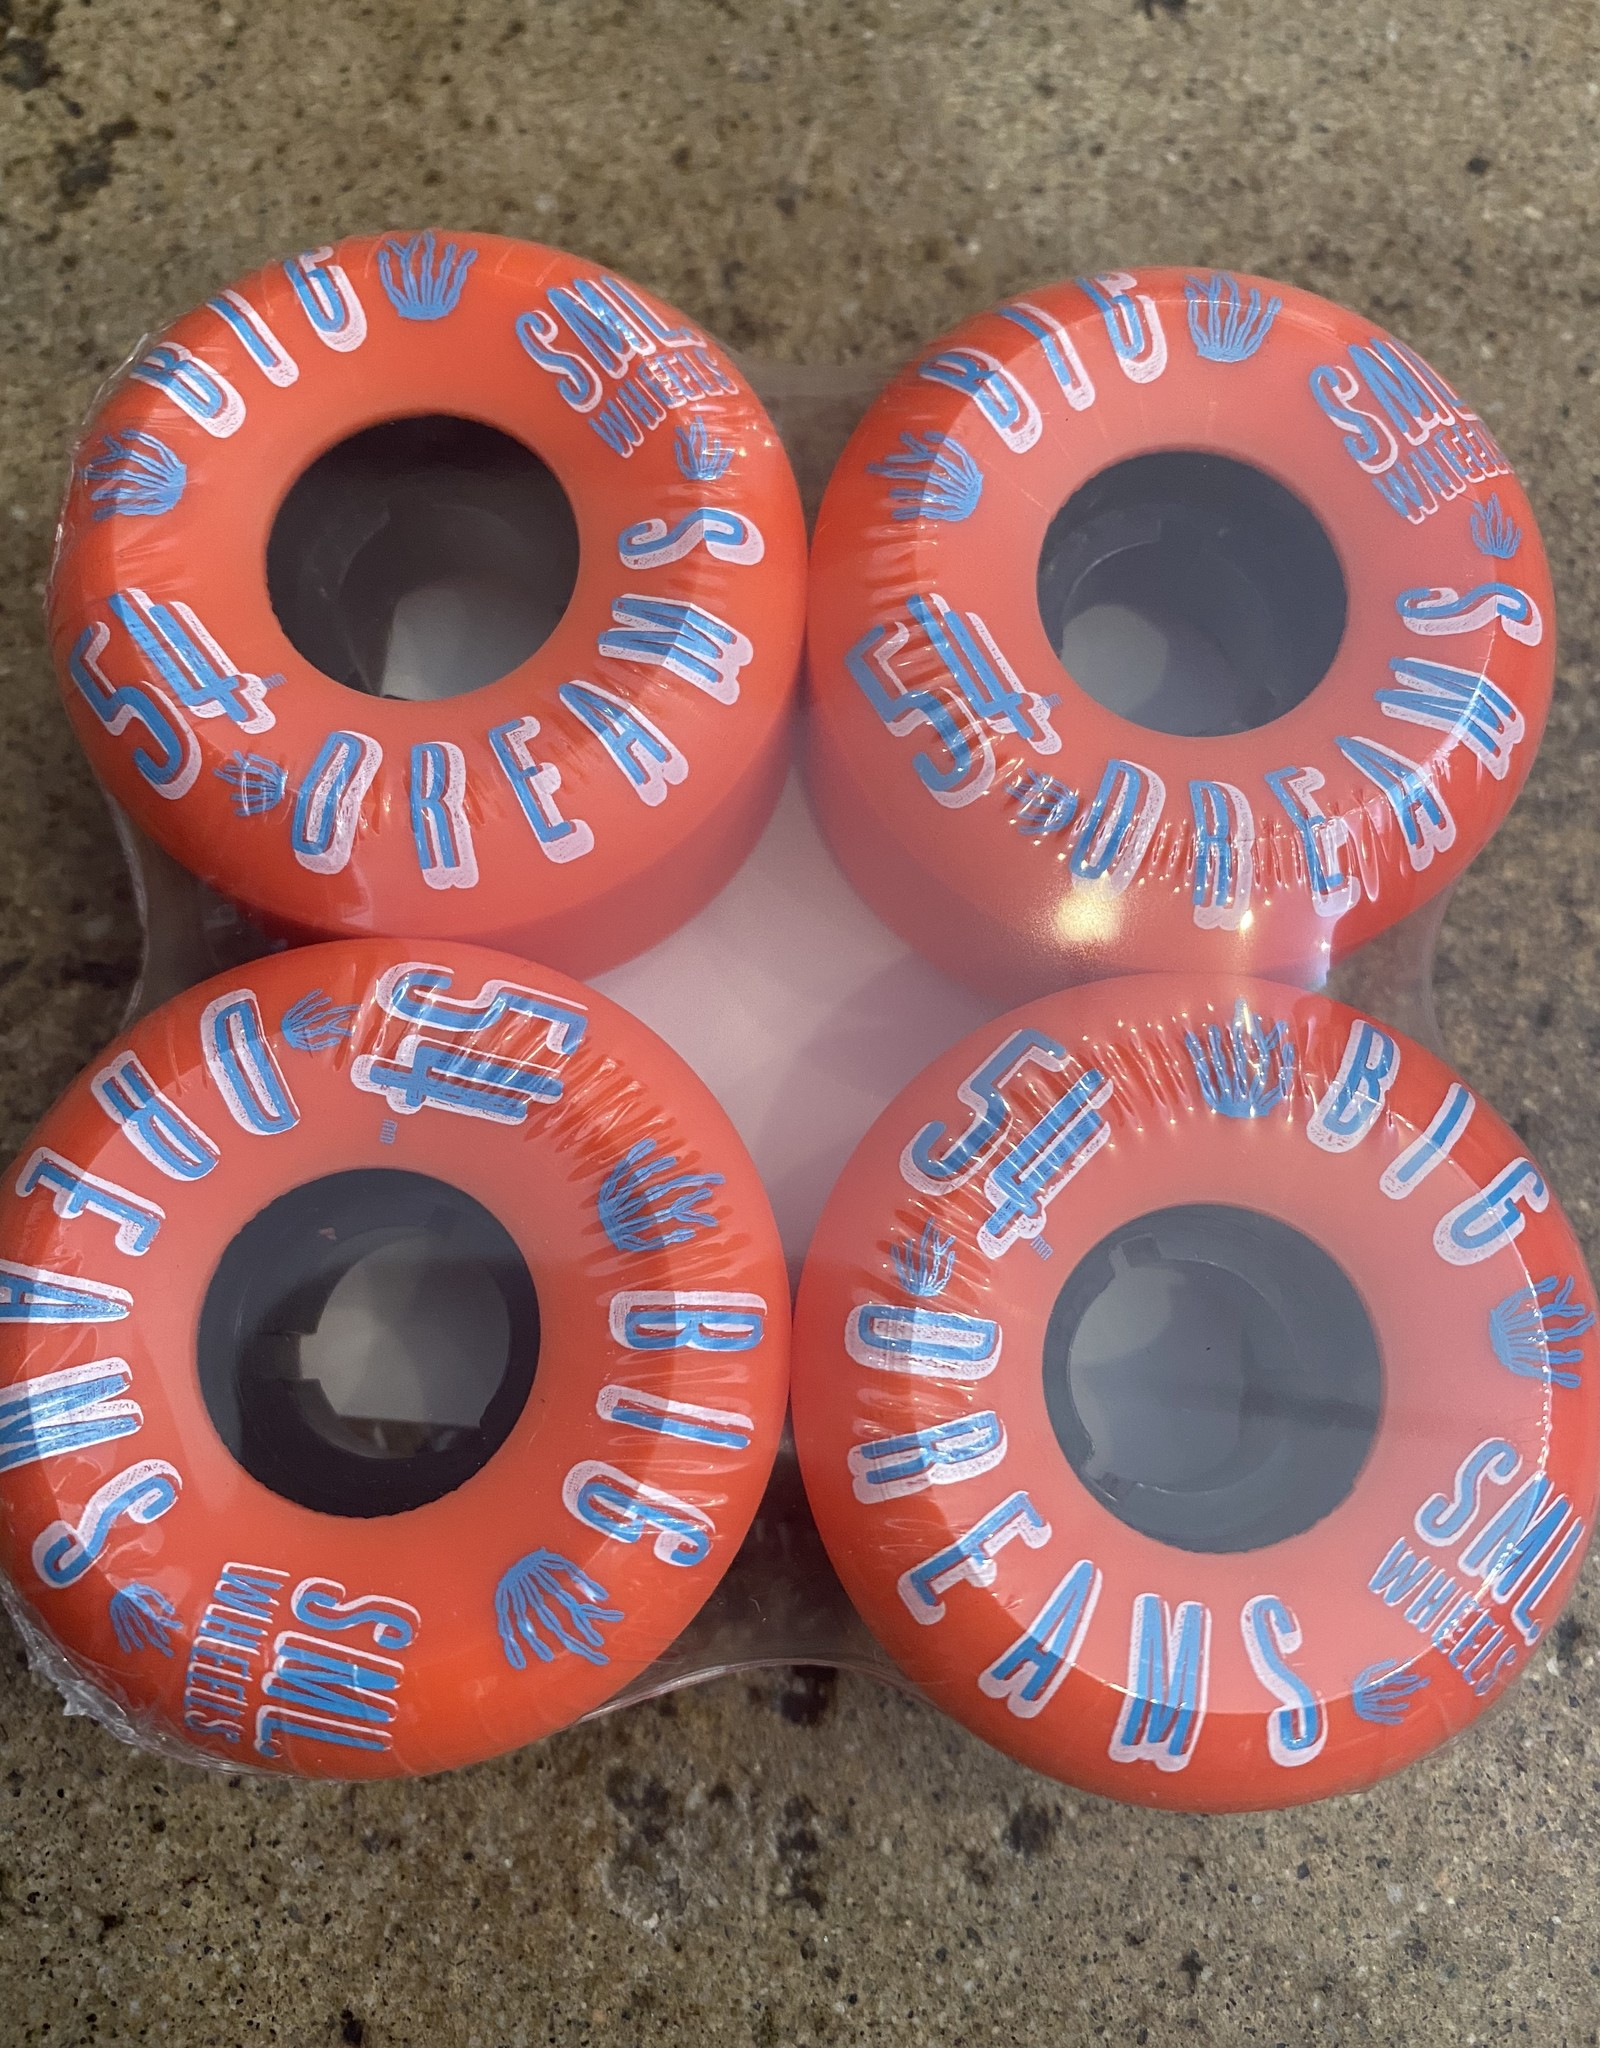 SML SUCCULENT CRUISER V-CUT 92A FIRE WATER BIG DREAMS WHEEL - 54MM